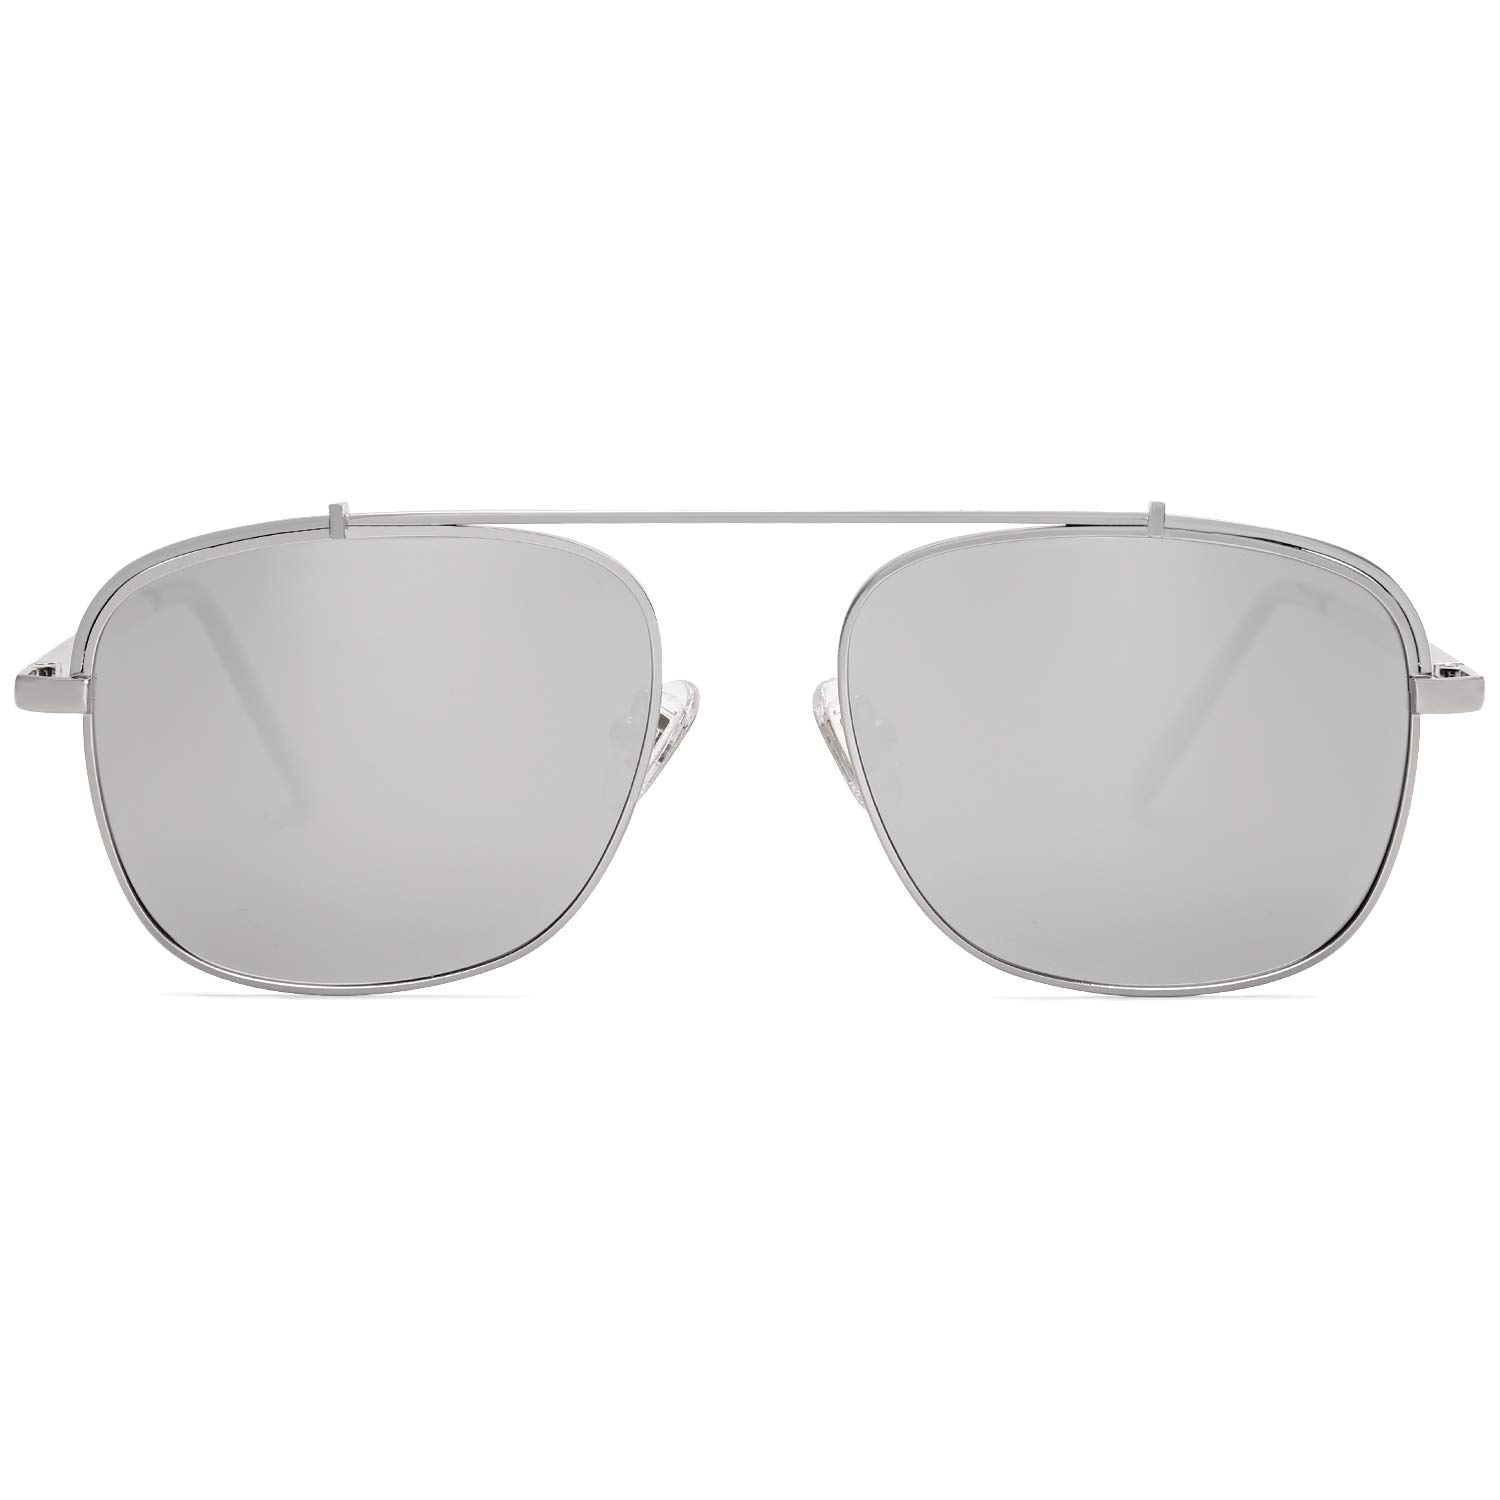 SOJOS Polarized Square Aviator Sunglasses with Spring Hinge Mirrored Lens SJ1118 with Silver Frame/Silver Mirrored Polarized Lens by SOJOS